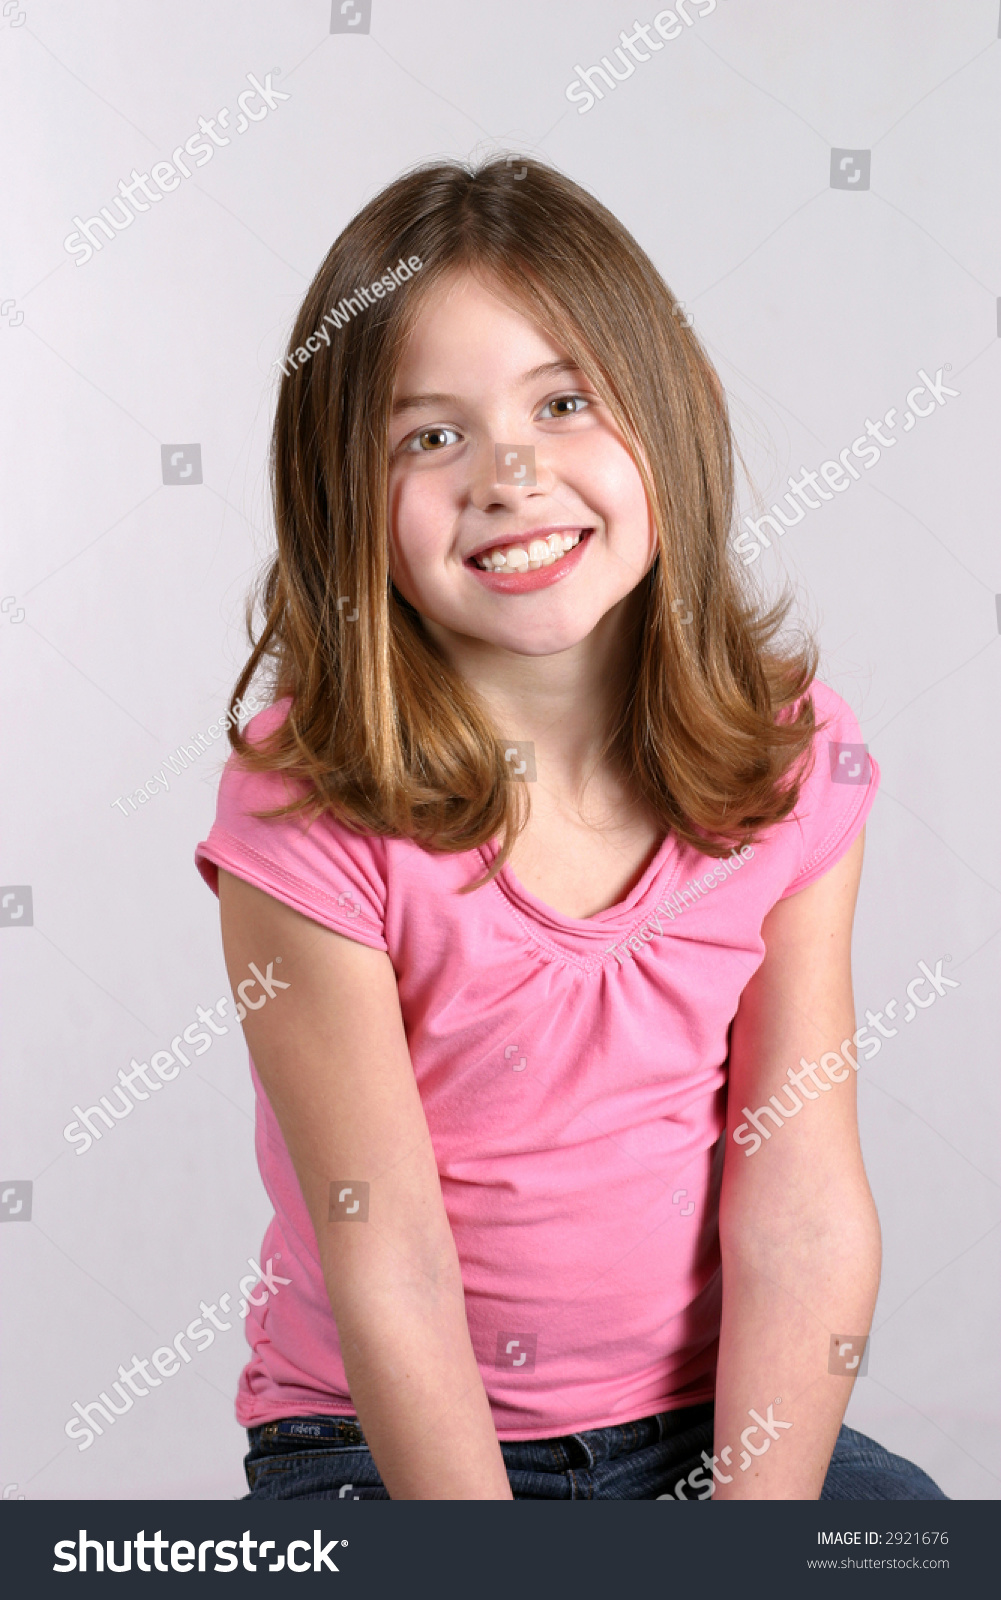 Pre Teen Model Gallery: Pretty Young Preteen Girl Pink Shirt Stock Photo 2921676